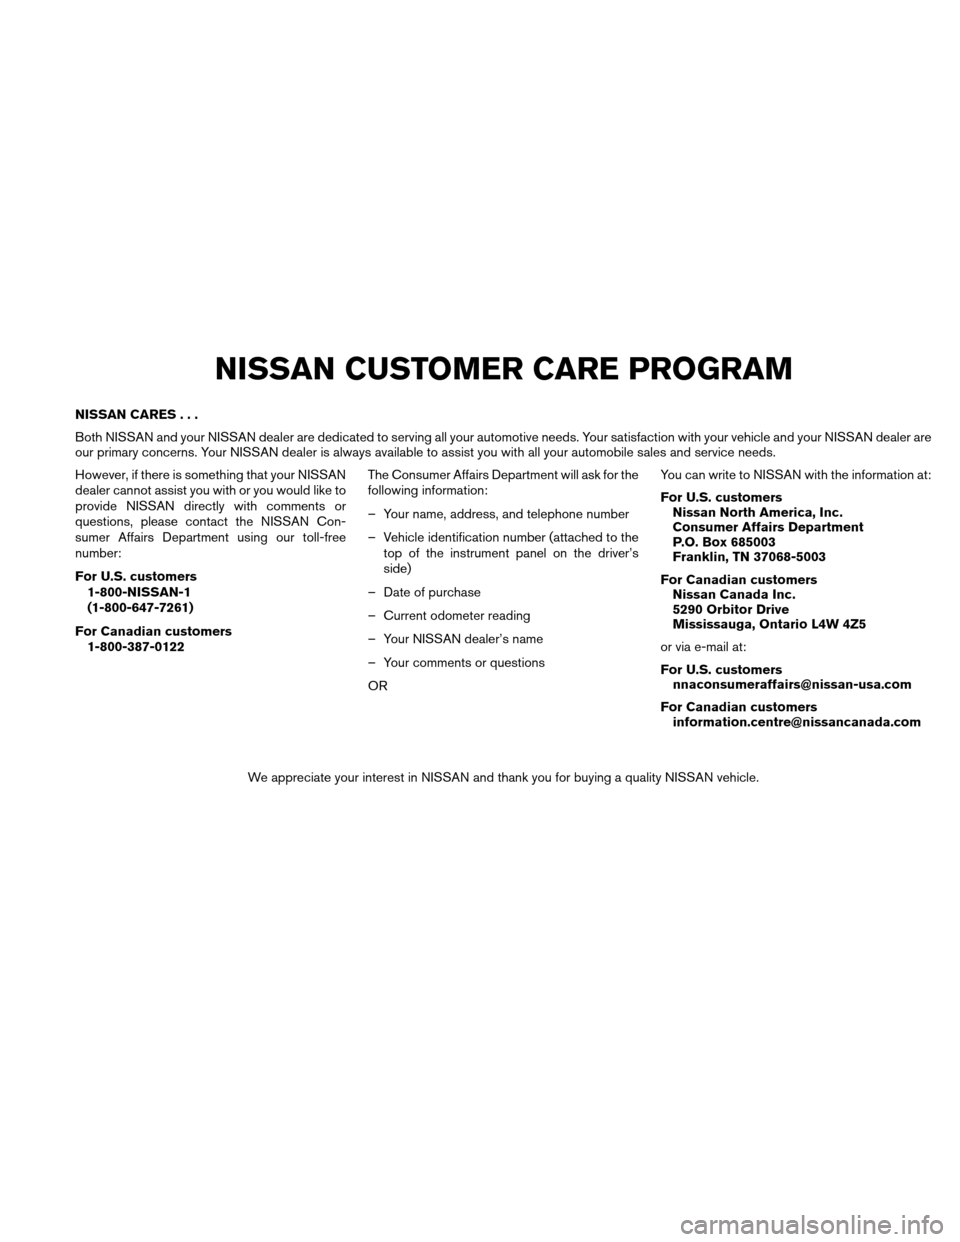 NISSAN VERSA HATCHBACK 2011 1.G Owners Manual NISSAN CARES... Both NISSAN and your NISSAN dealer are dedicated to serving all your automotive needs. Your satisfaction with your vehicle and your NISSAN dealer are our primary concerns. Your NISSAN